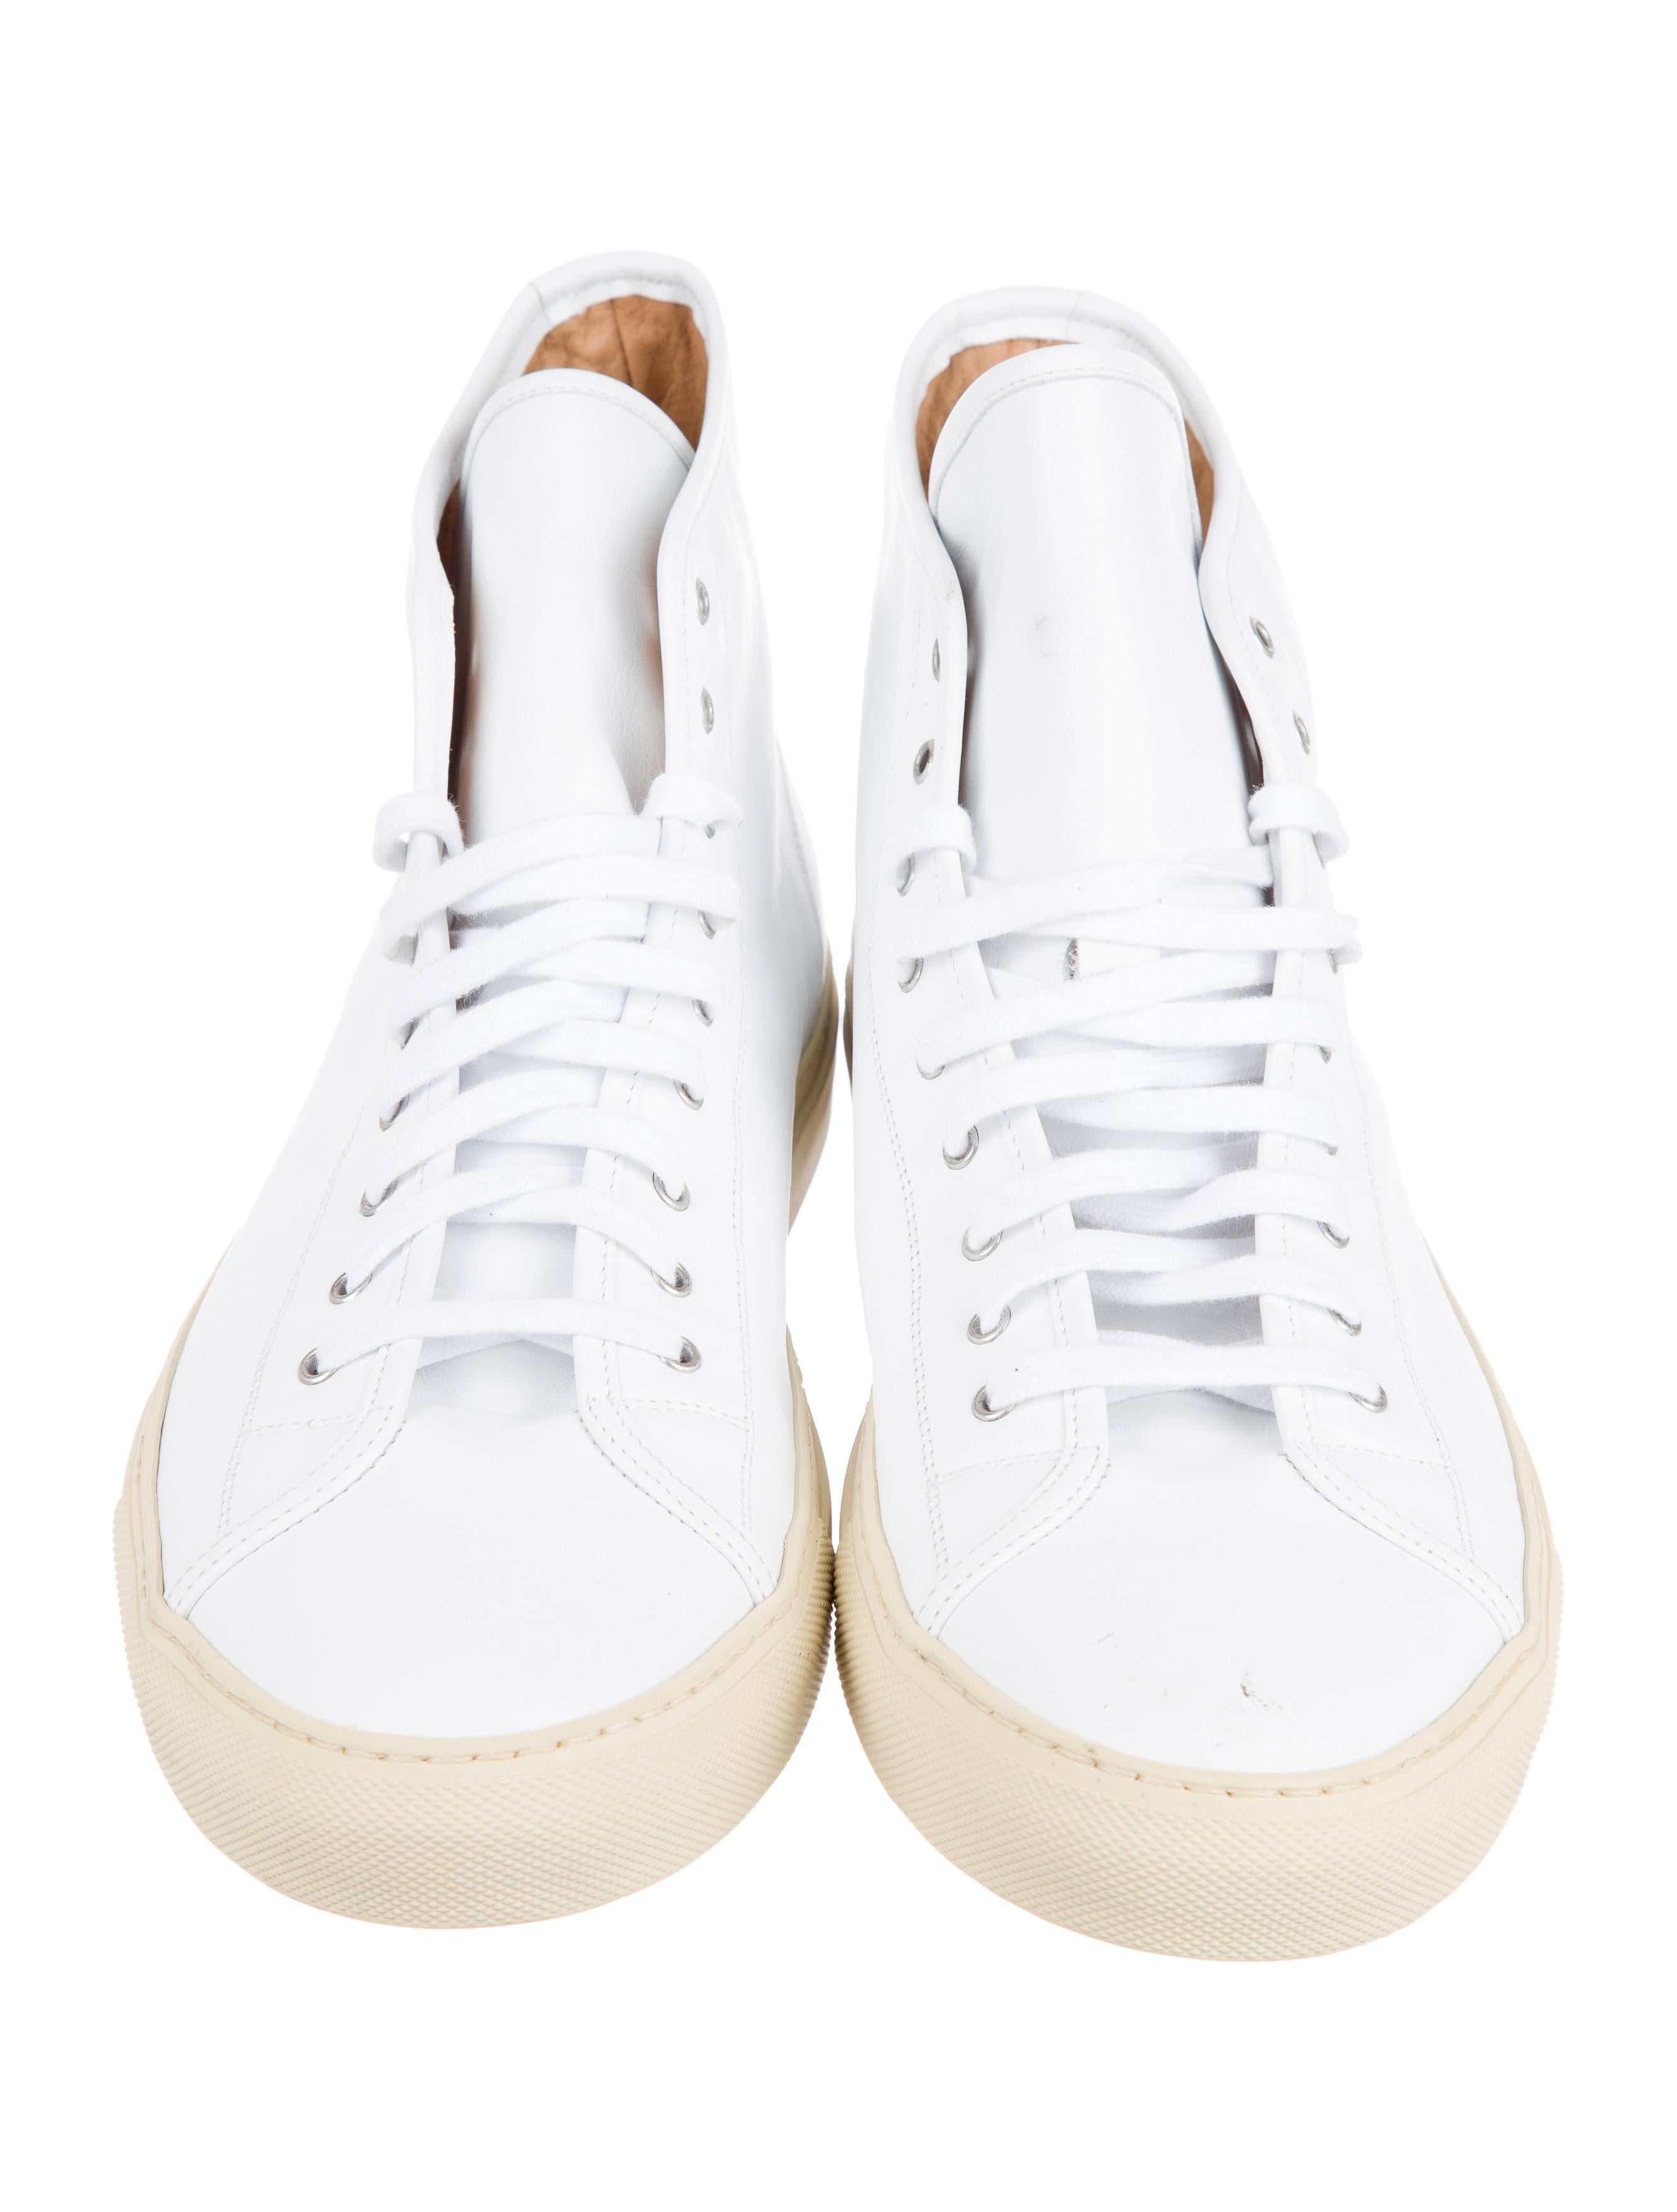 common projects achilles high top sneakers shoes w1c20584 the realreal. Black Bedroom Furniture Sets. Home Design Ideas